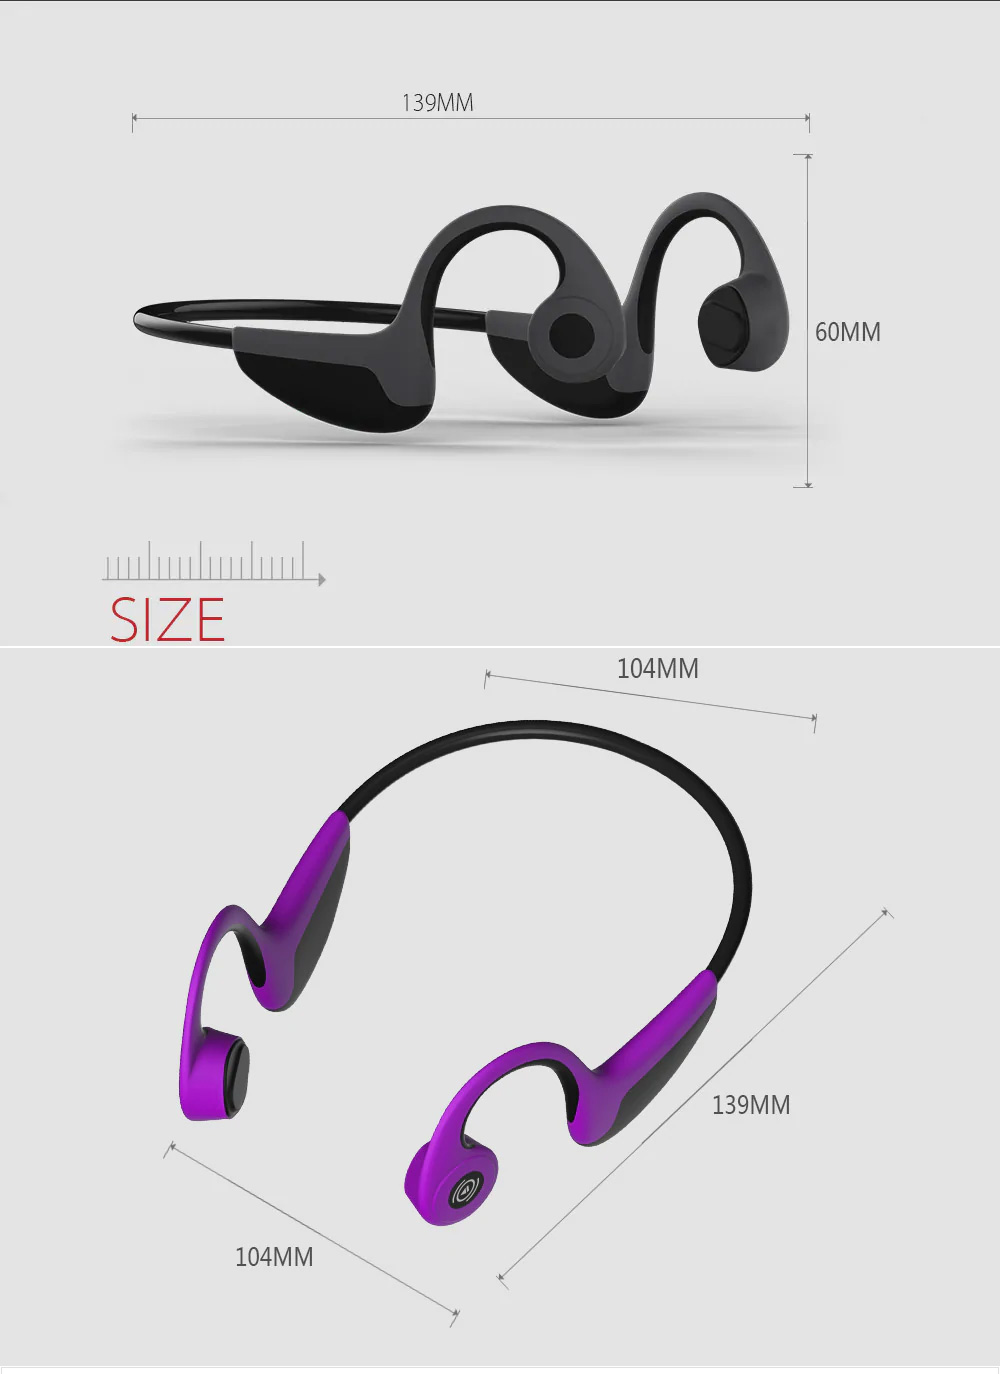 Global Crown Bluetooth Music Call Rear-mounted Sports Headphone Bone Conduction Headphones For Jogging Running Driving Cycling 14